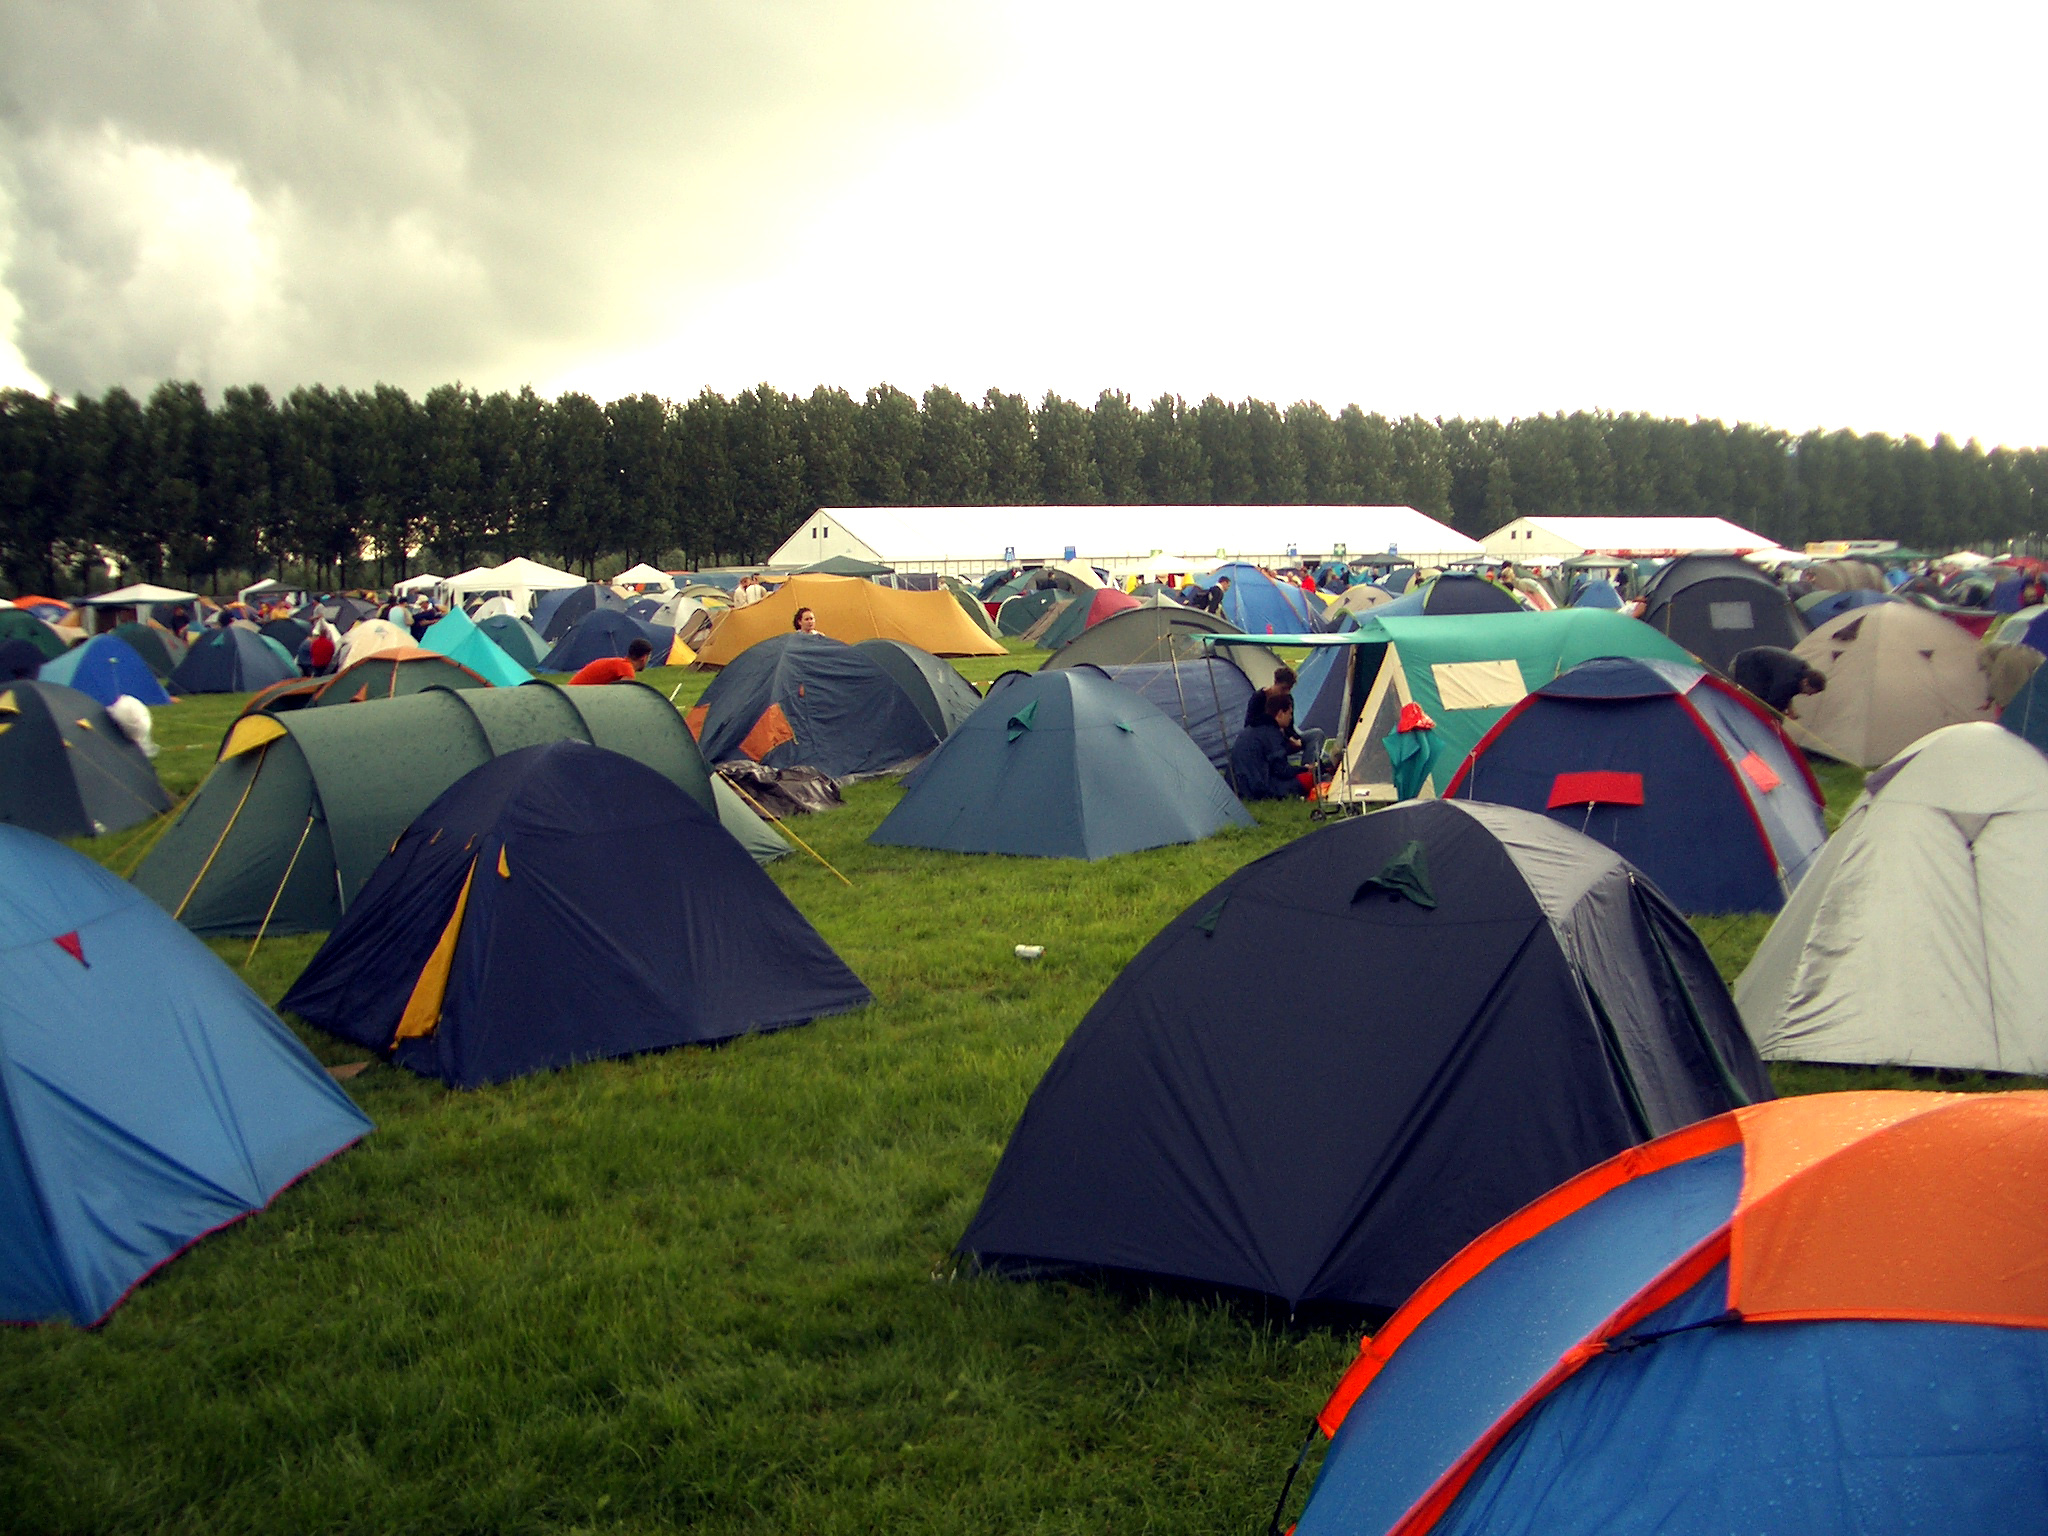 FileLowlands tents.jpg & File:Lowlands tents.jpg - Wikimedia Commons